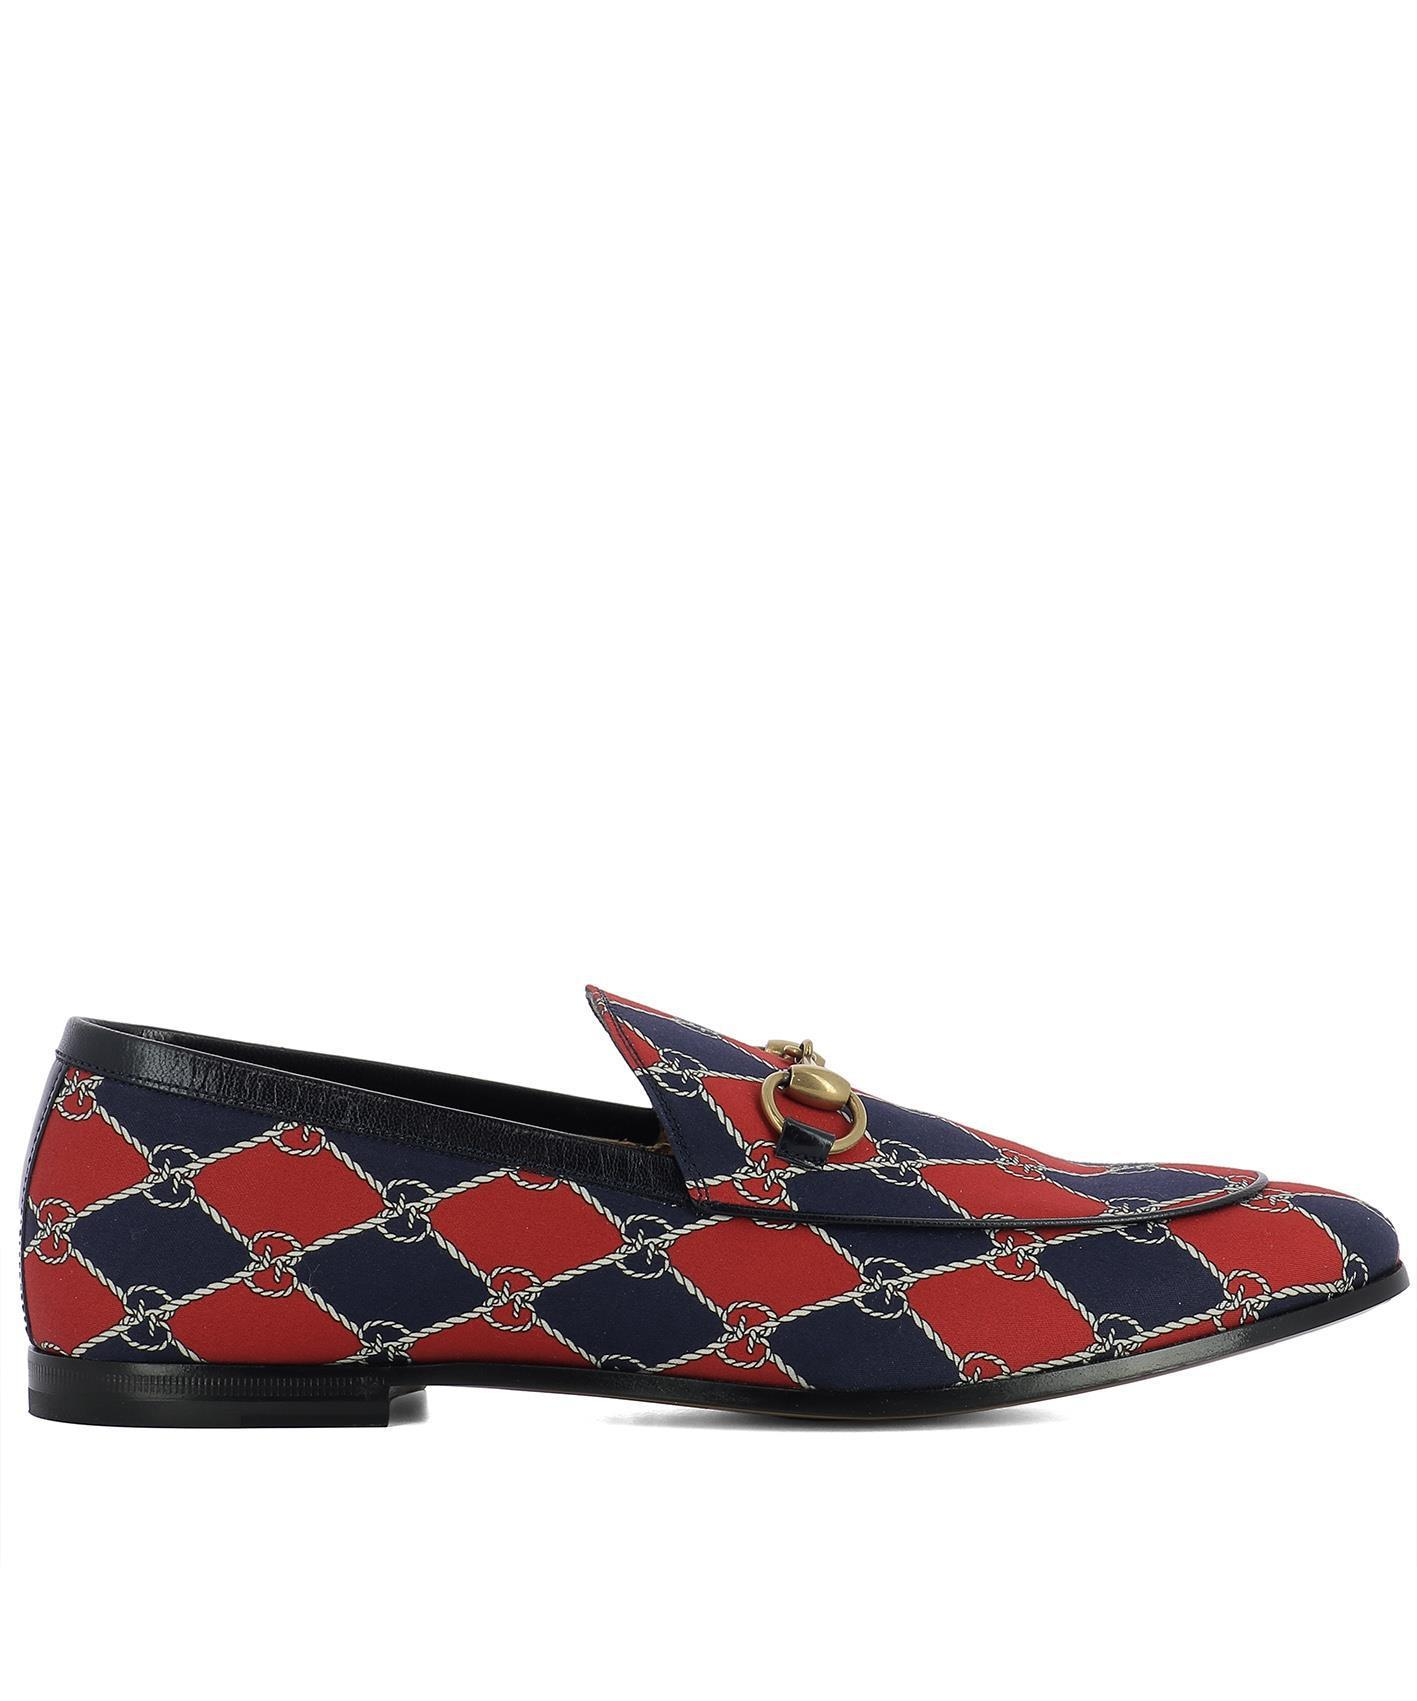 1531e2d19b9 Lyst - Gucci Rhombus Loafers in Blue for Men